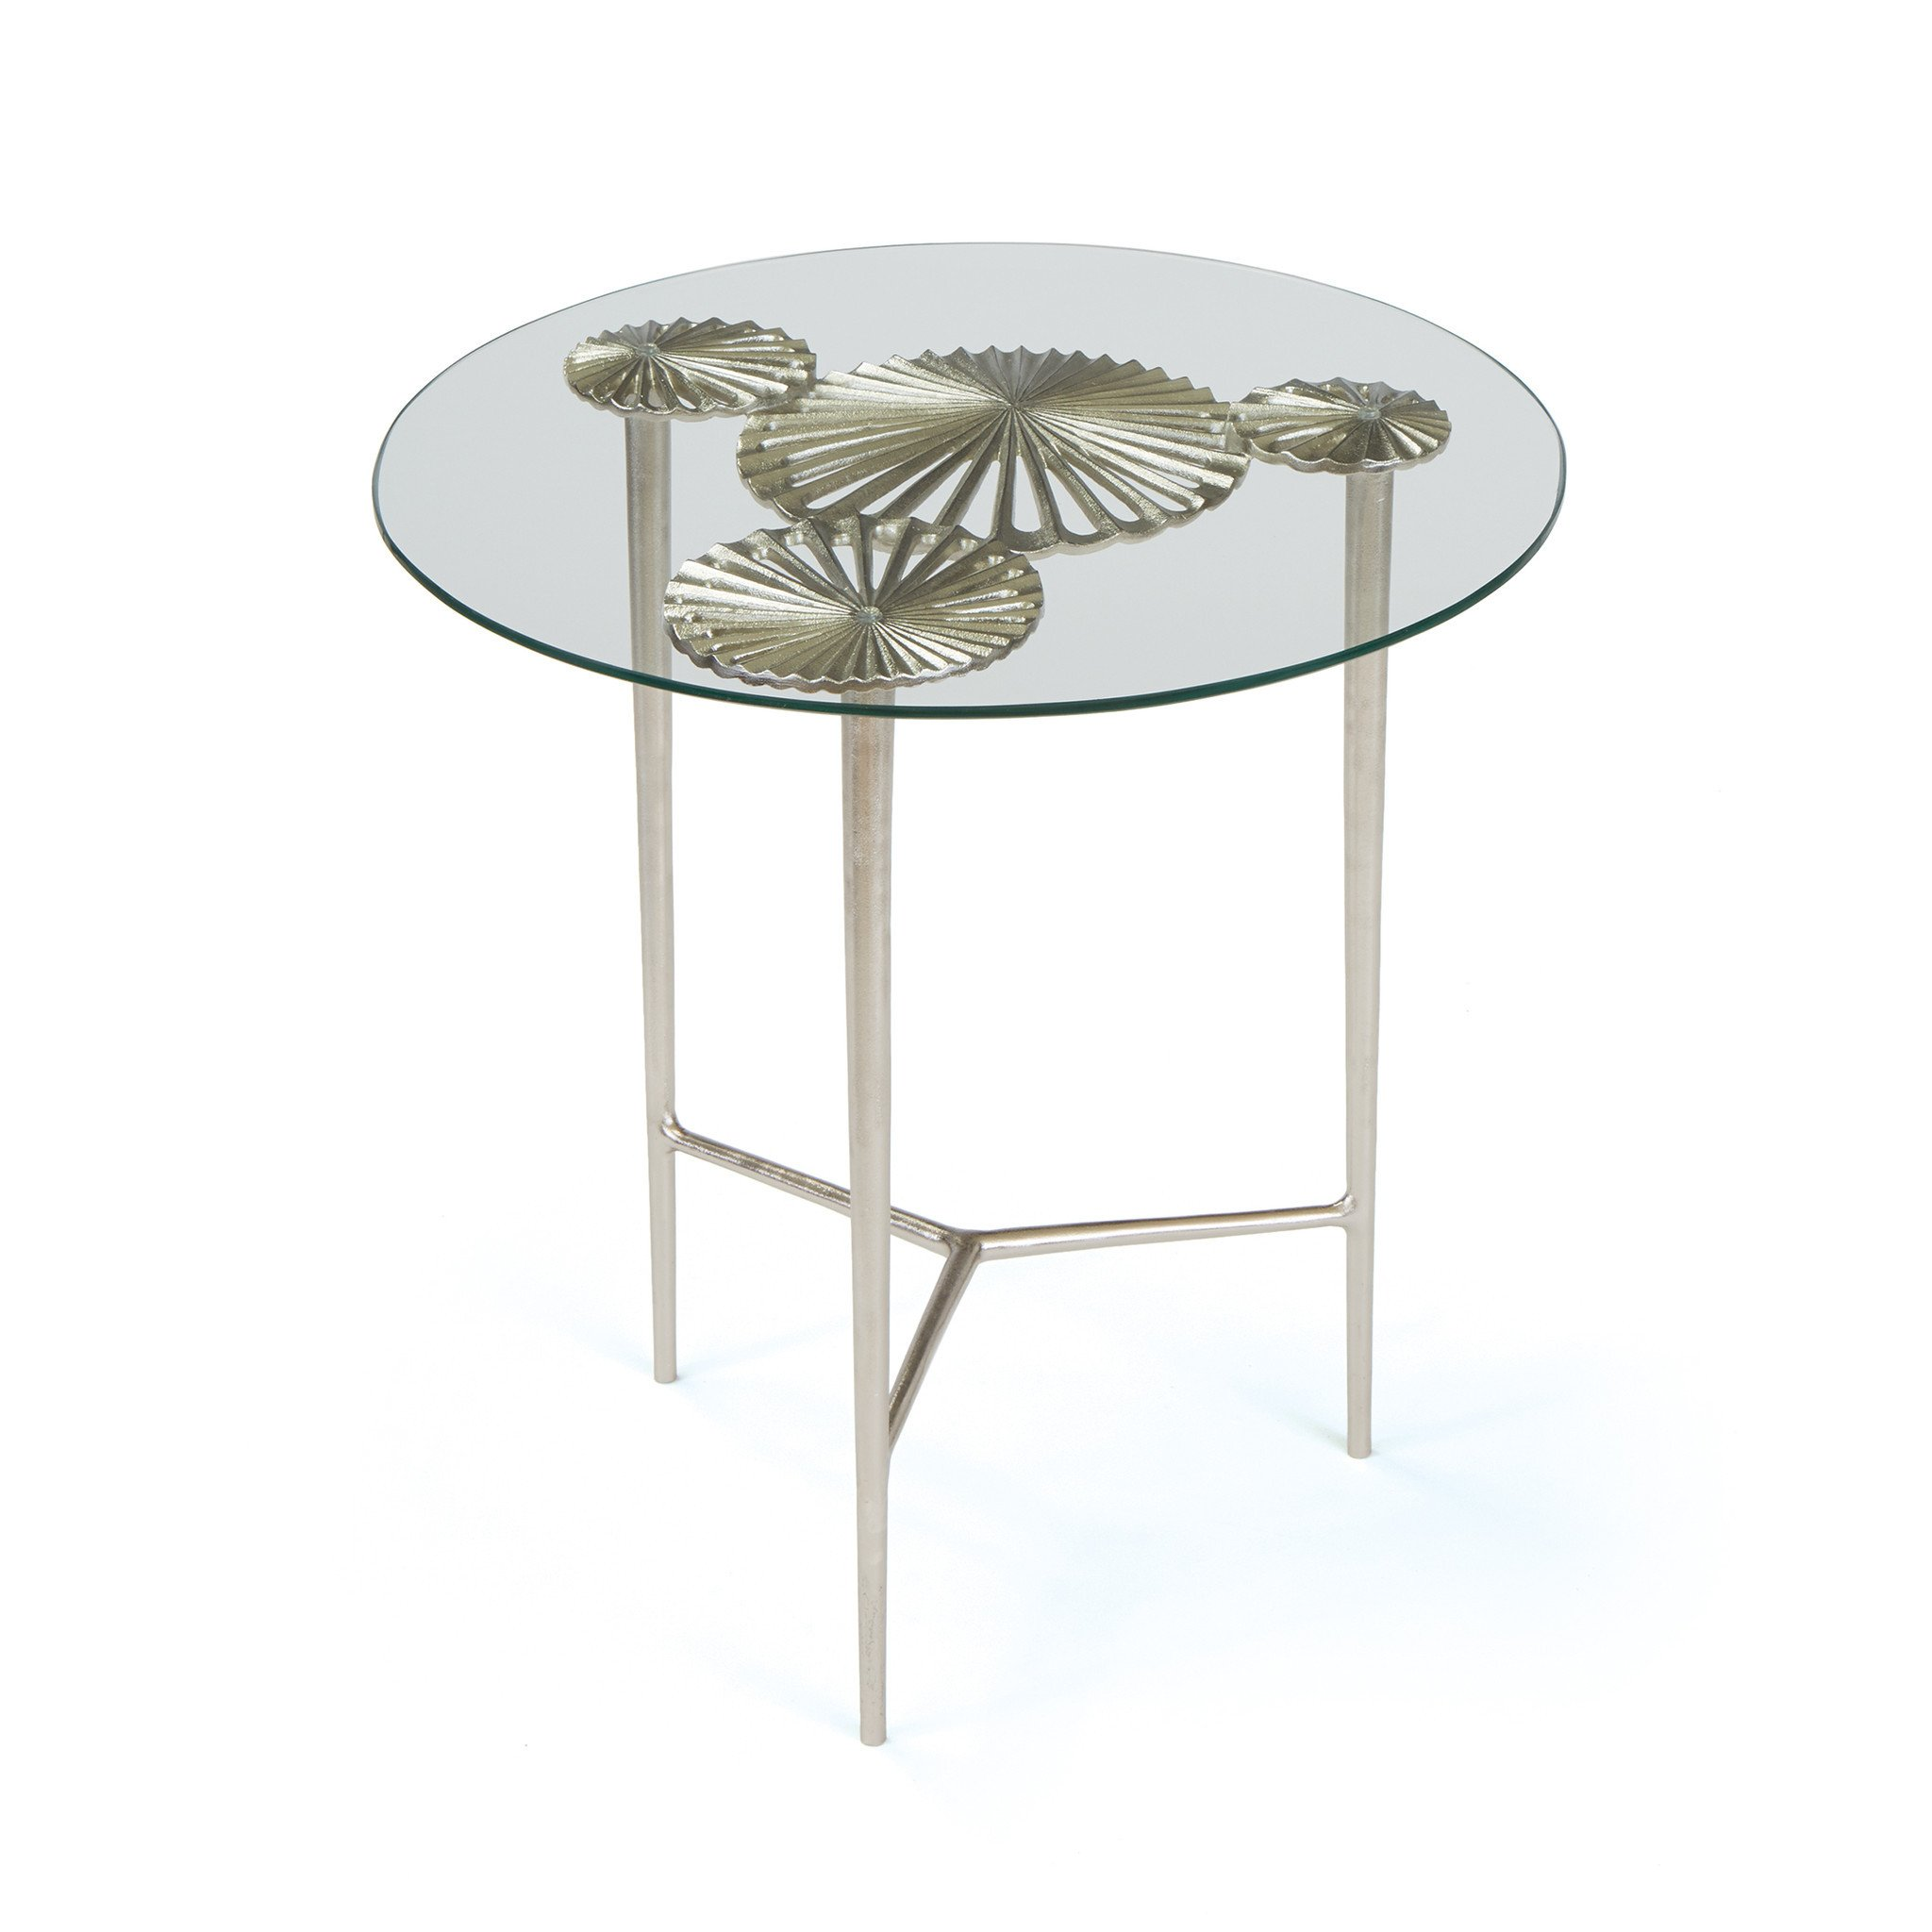 modern contemporary rustic vintage side end tables alan decor alton table with round glass top brushed nickel aluminum accent night covers italian dining white cube bedside bbq